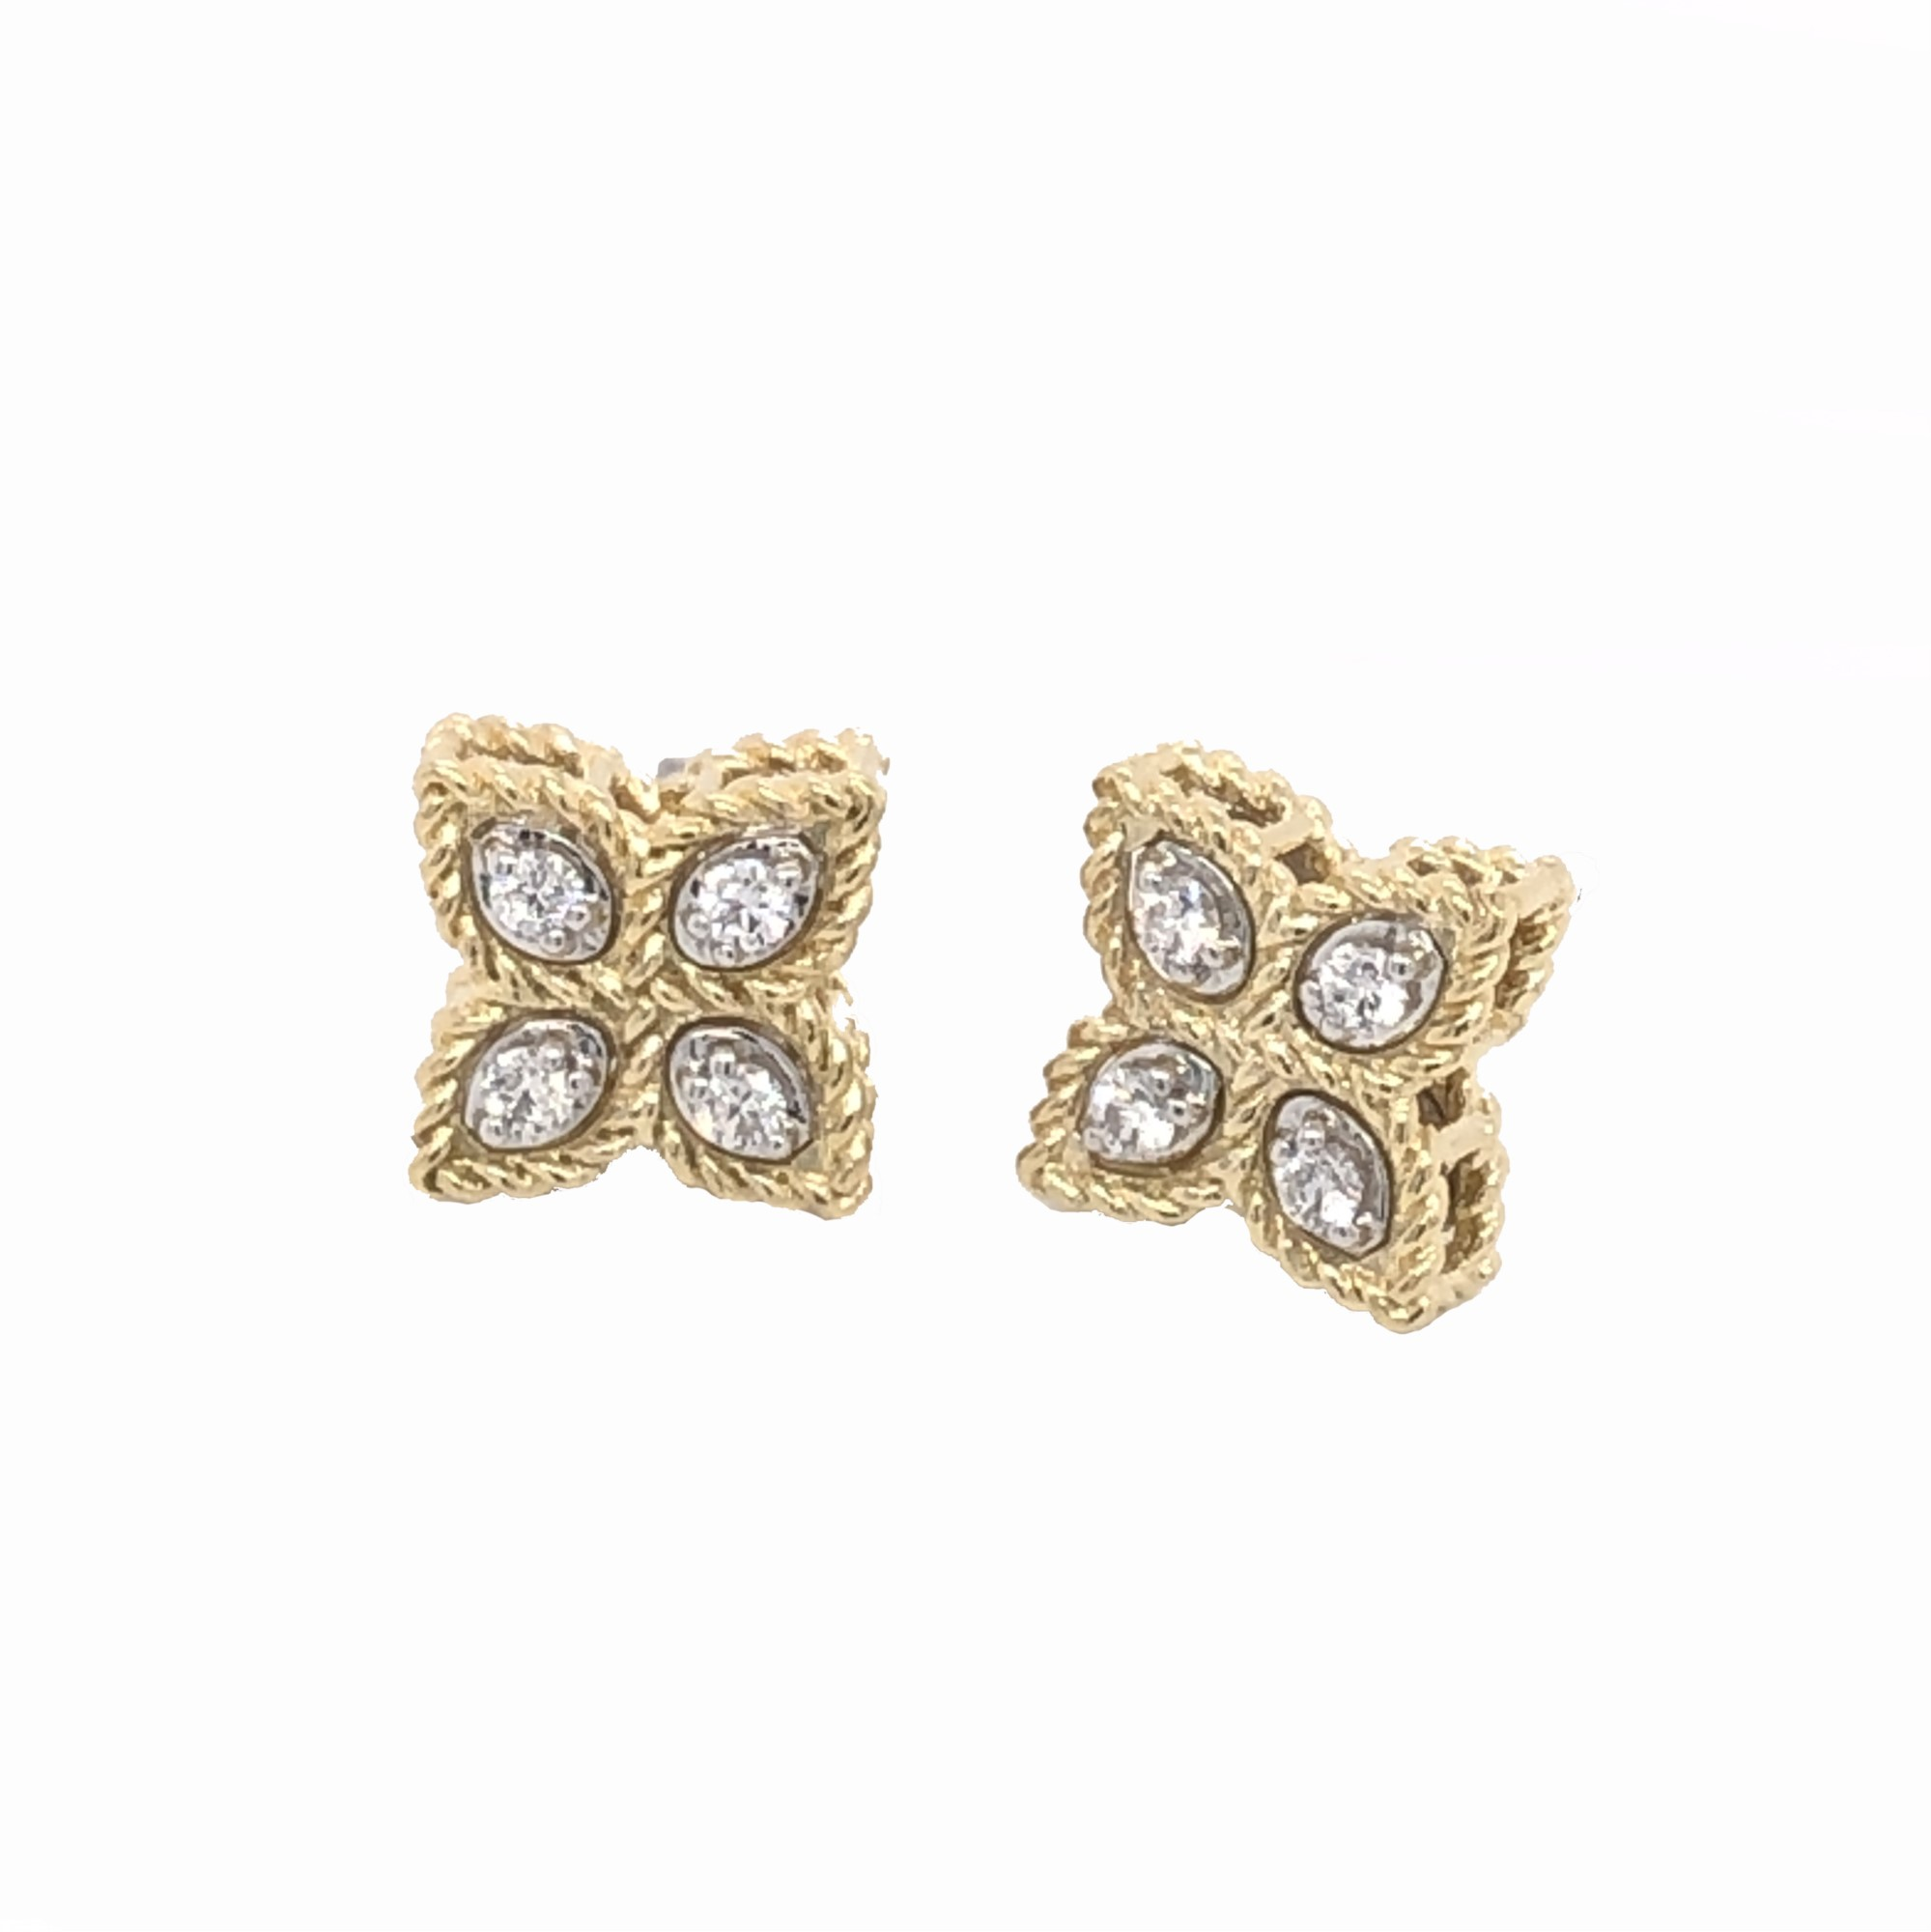 Roberto Coin 18k Yellow Gold .38cts  Diamonds Gold Earrings with Stones 7771382AJERX